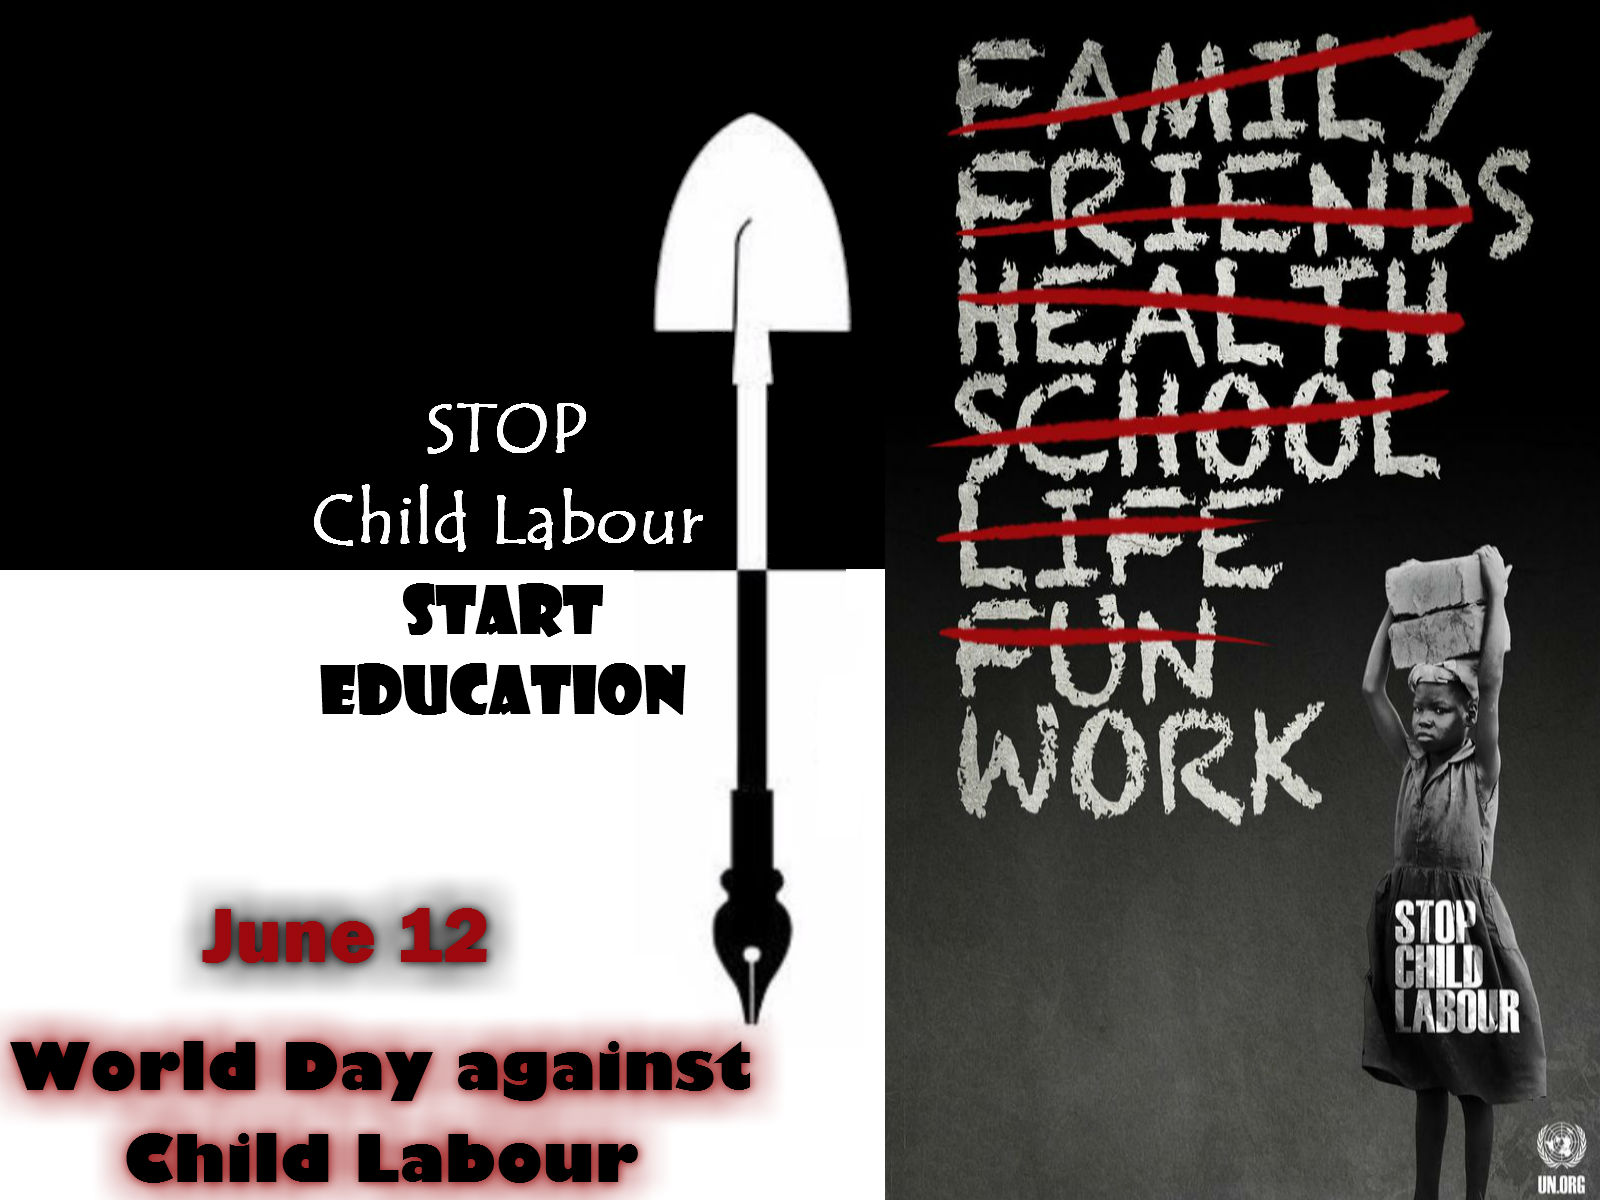 day Against Child Labour - June 12